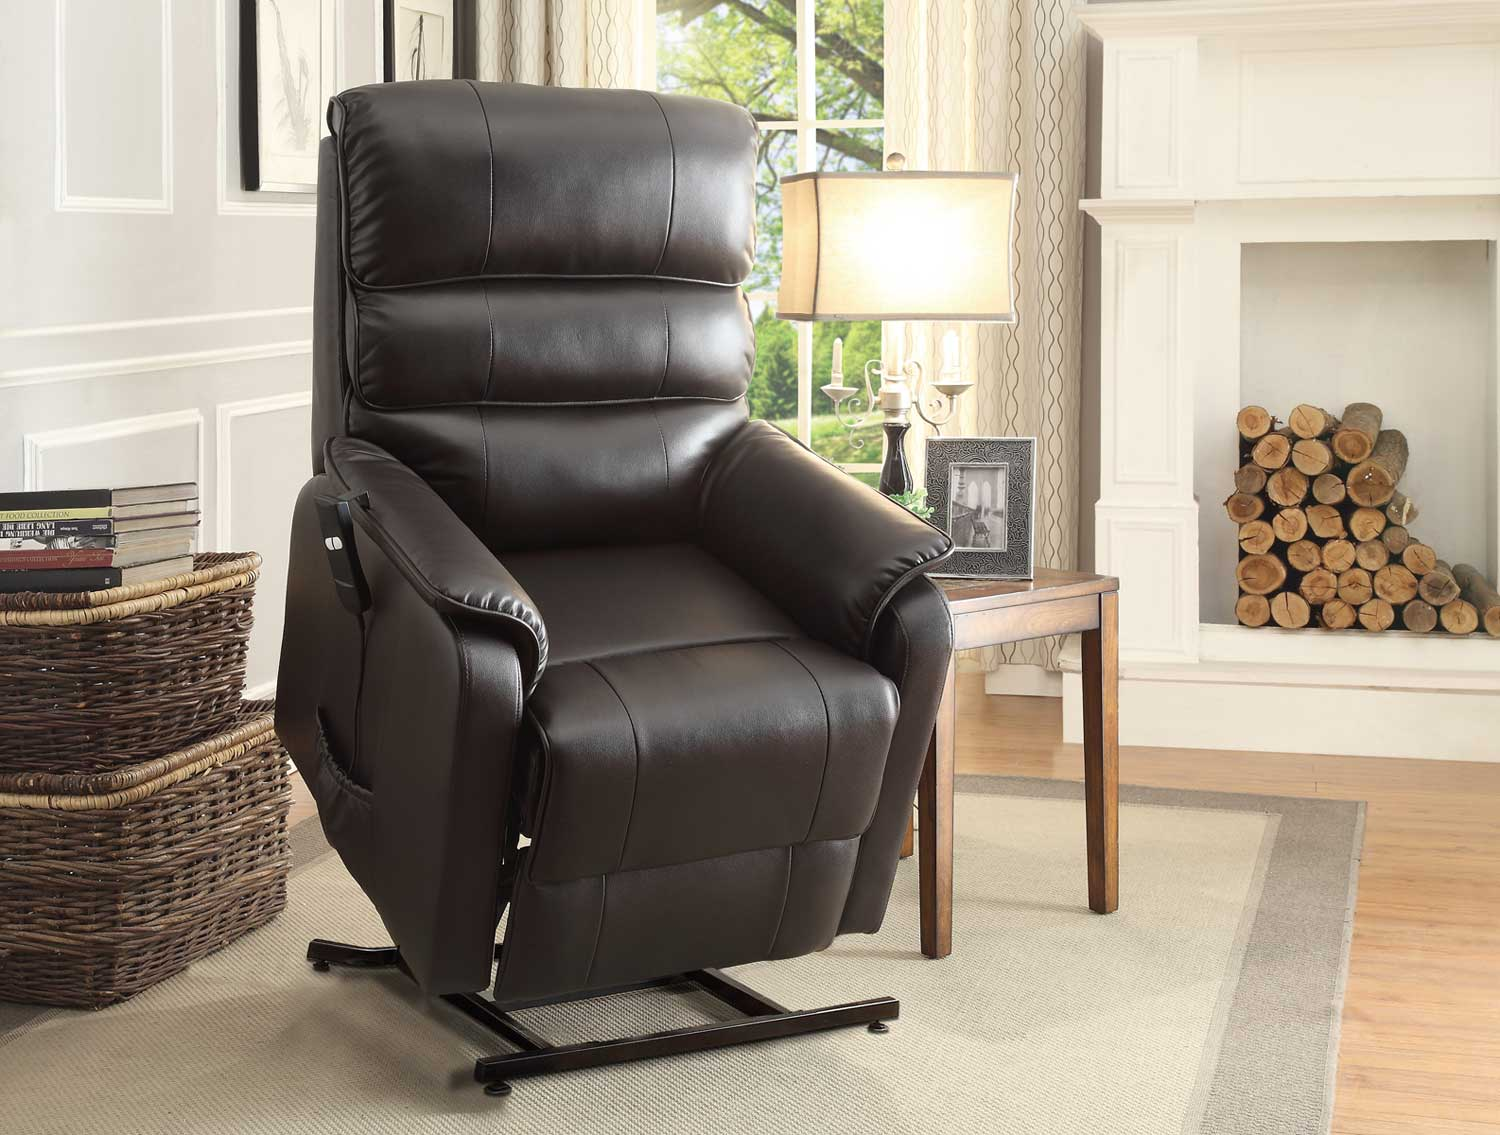 Leather lift chairs - Homelegance Kellen Power Lift Chair Dark Brown All Bonded Leather